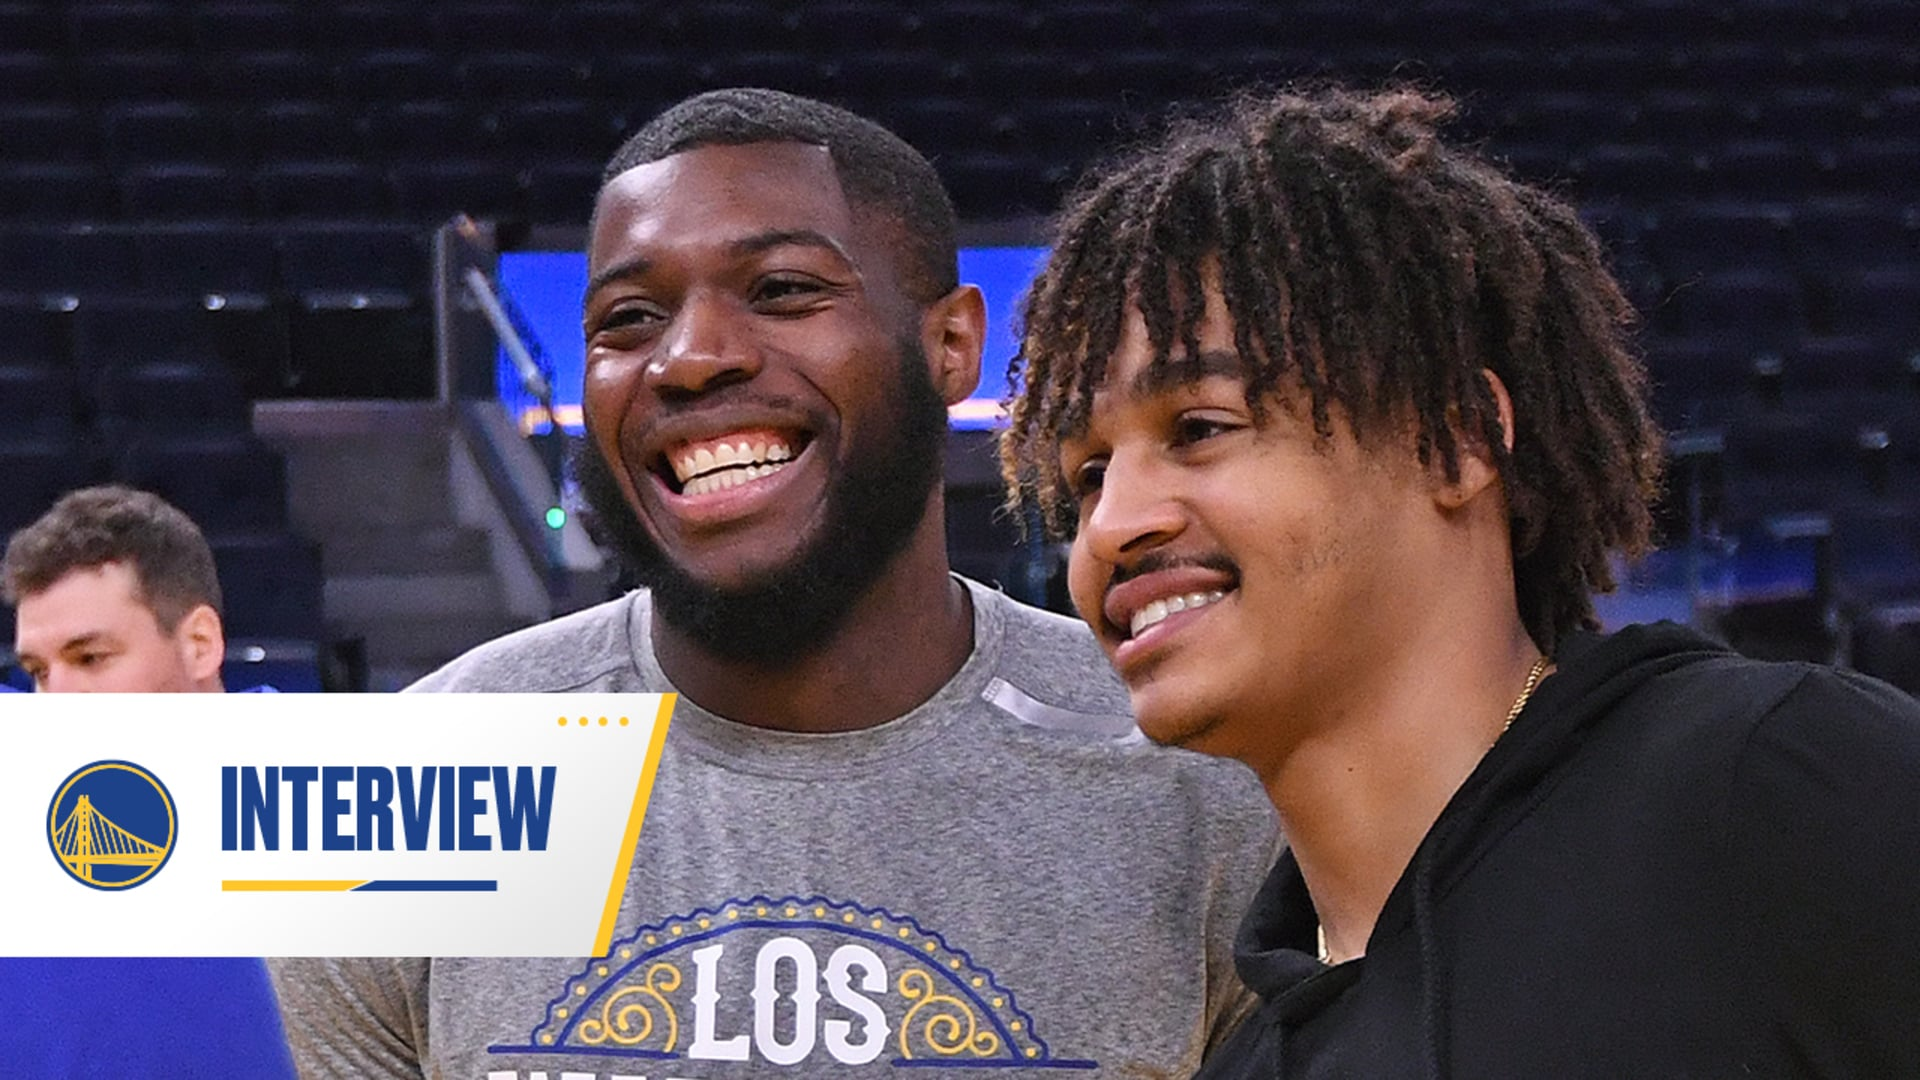 Checking in with Eric Paschall and Jordan Poole